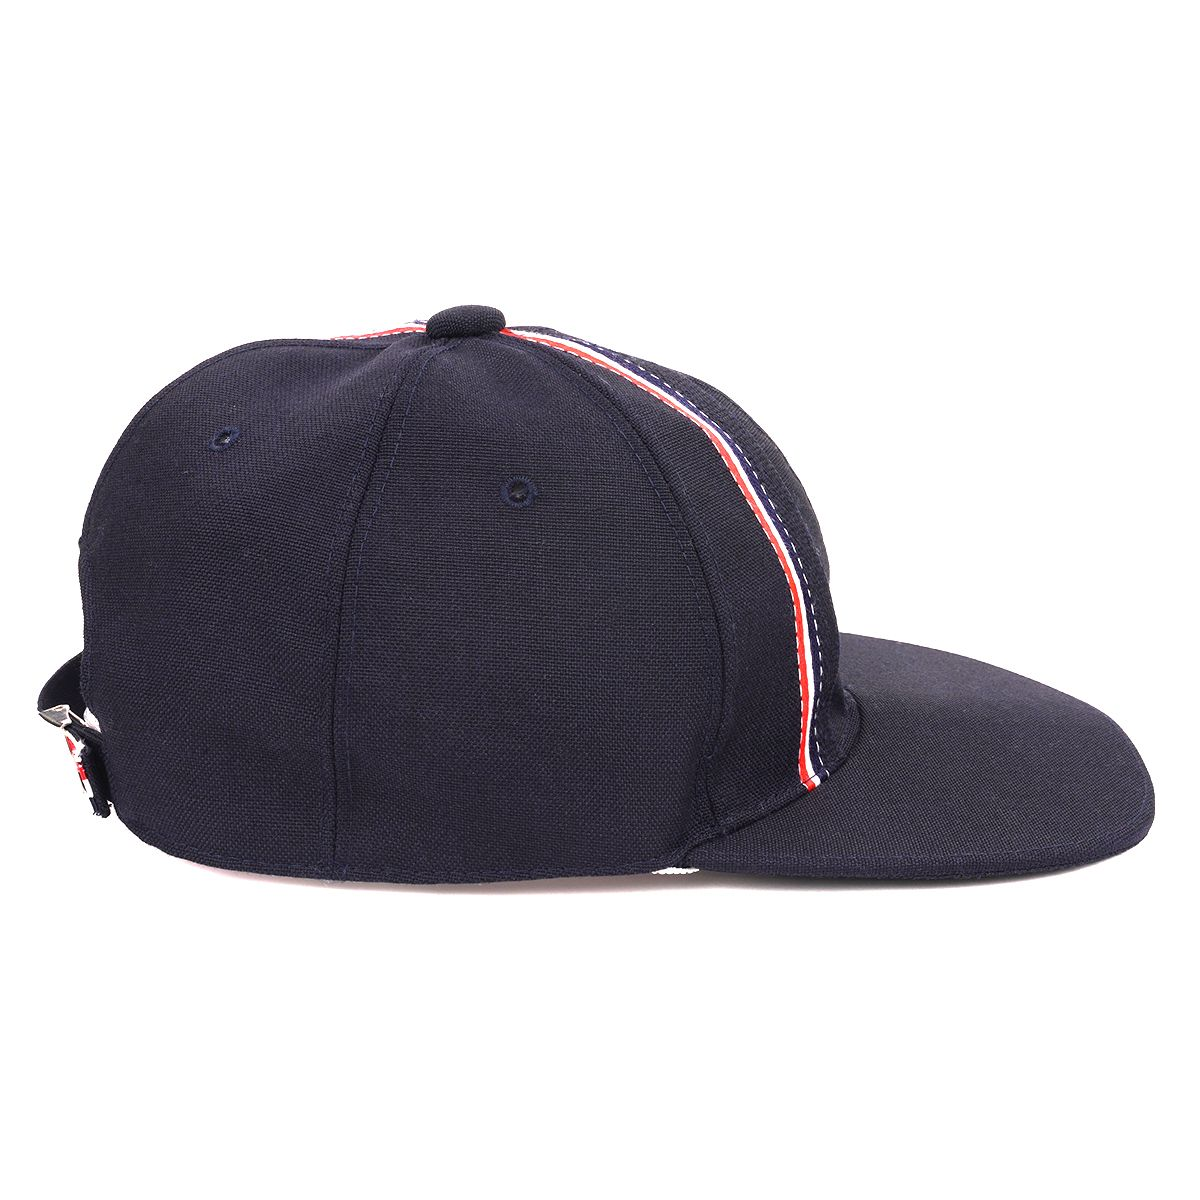 [お問い合わせ商品] THOM BROWNE. BASEBALL CAP W/ OVERLAPPED RWB SELVEDGE PLACEMENT IN 3 PLY WOOL MOHAIR / 415